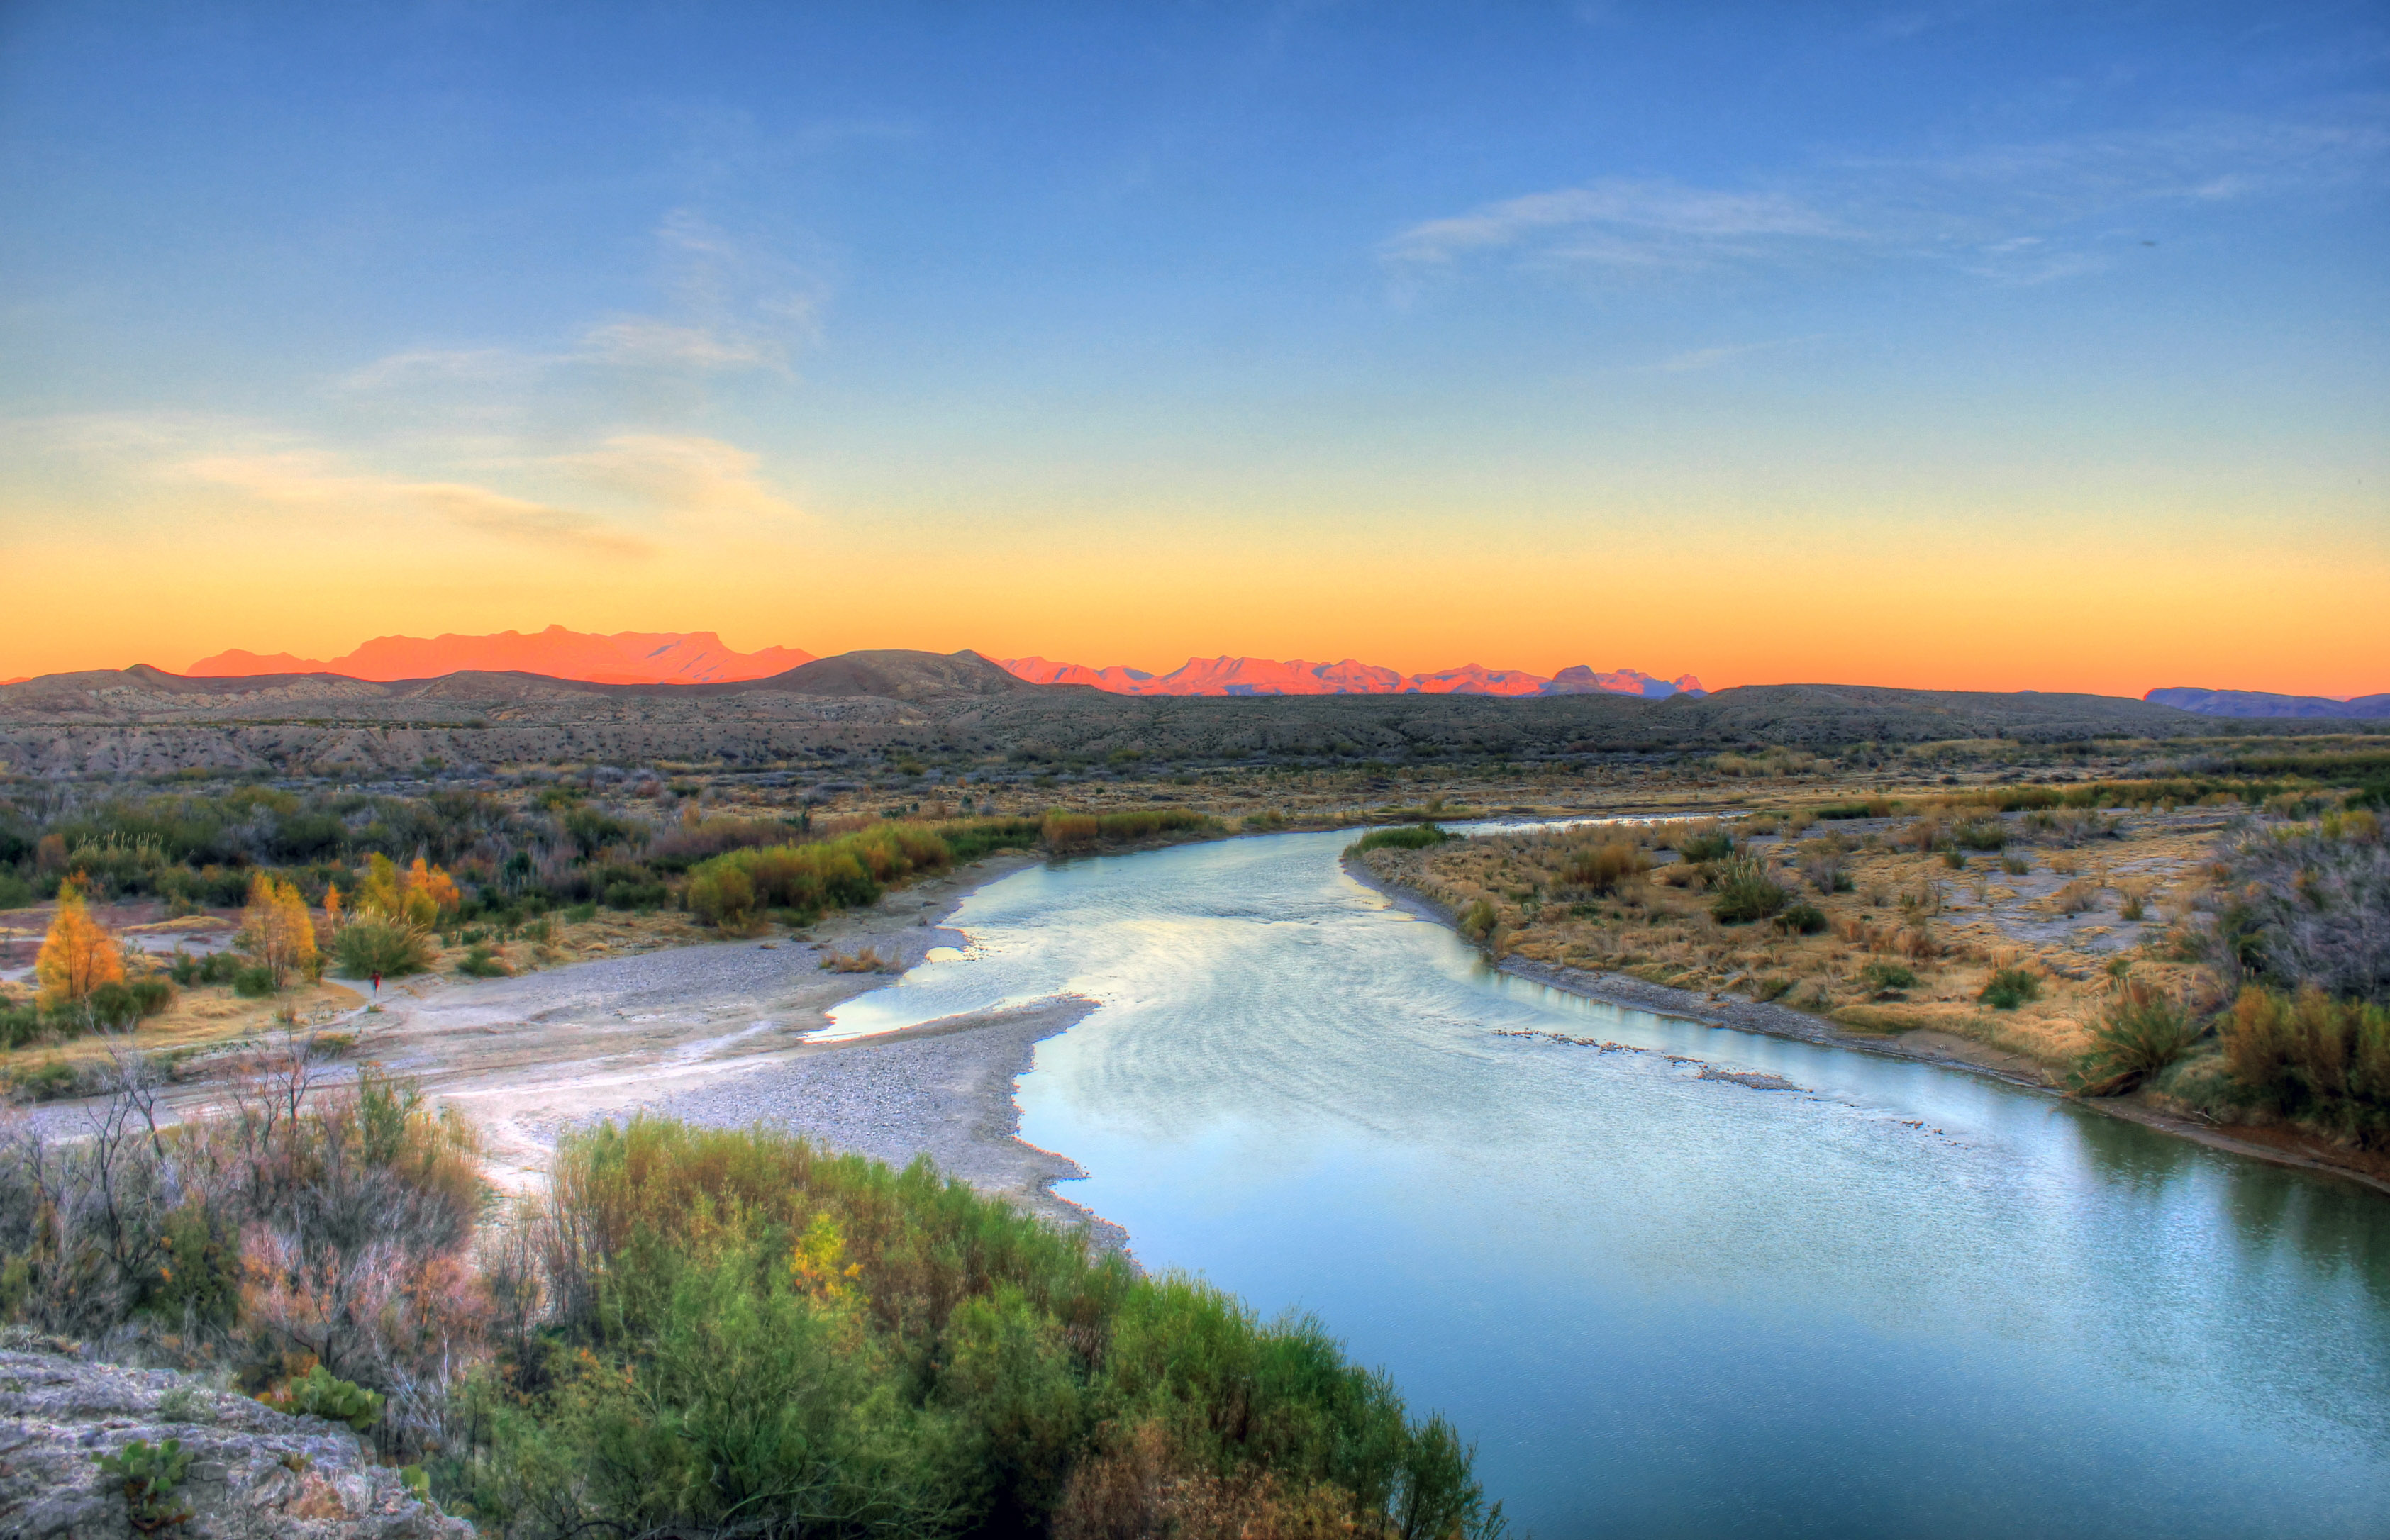 texas-big-bend-national-park-overview-of-the-rio-grande-at-dusk